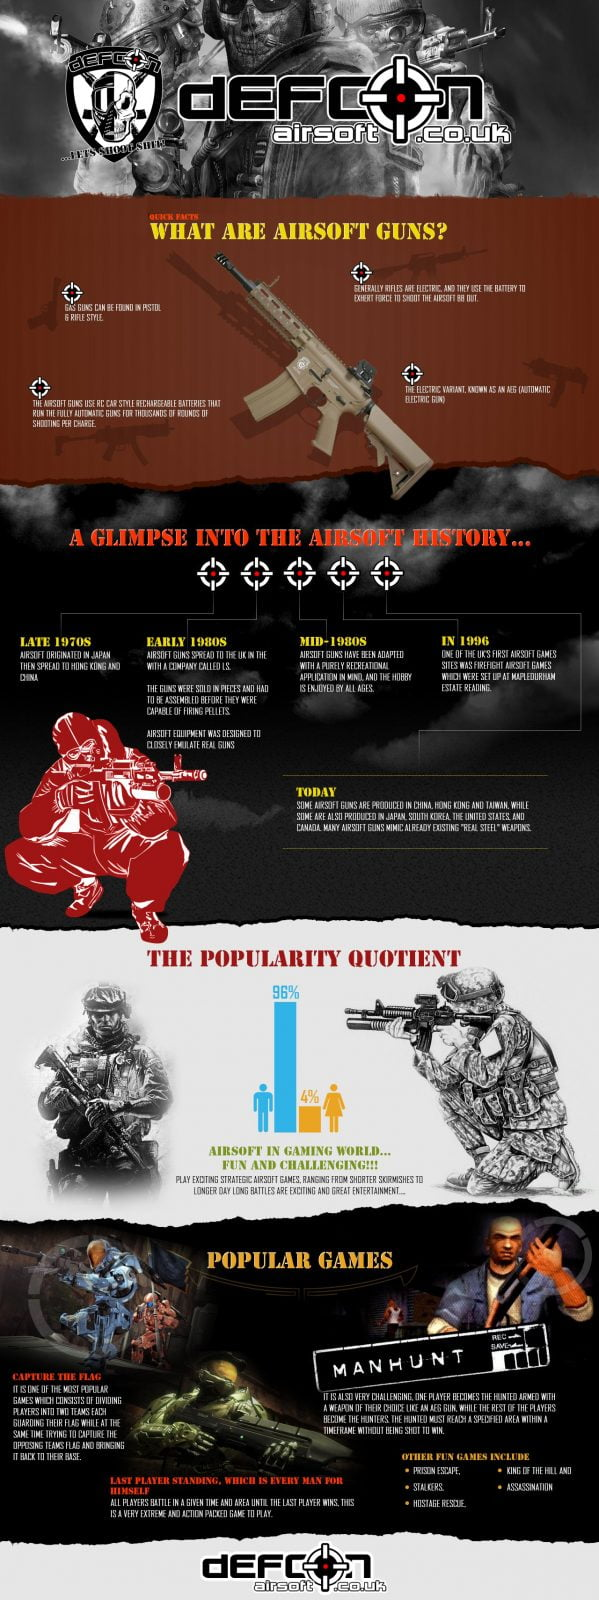 dEFCON Airsoft Infographic